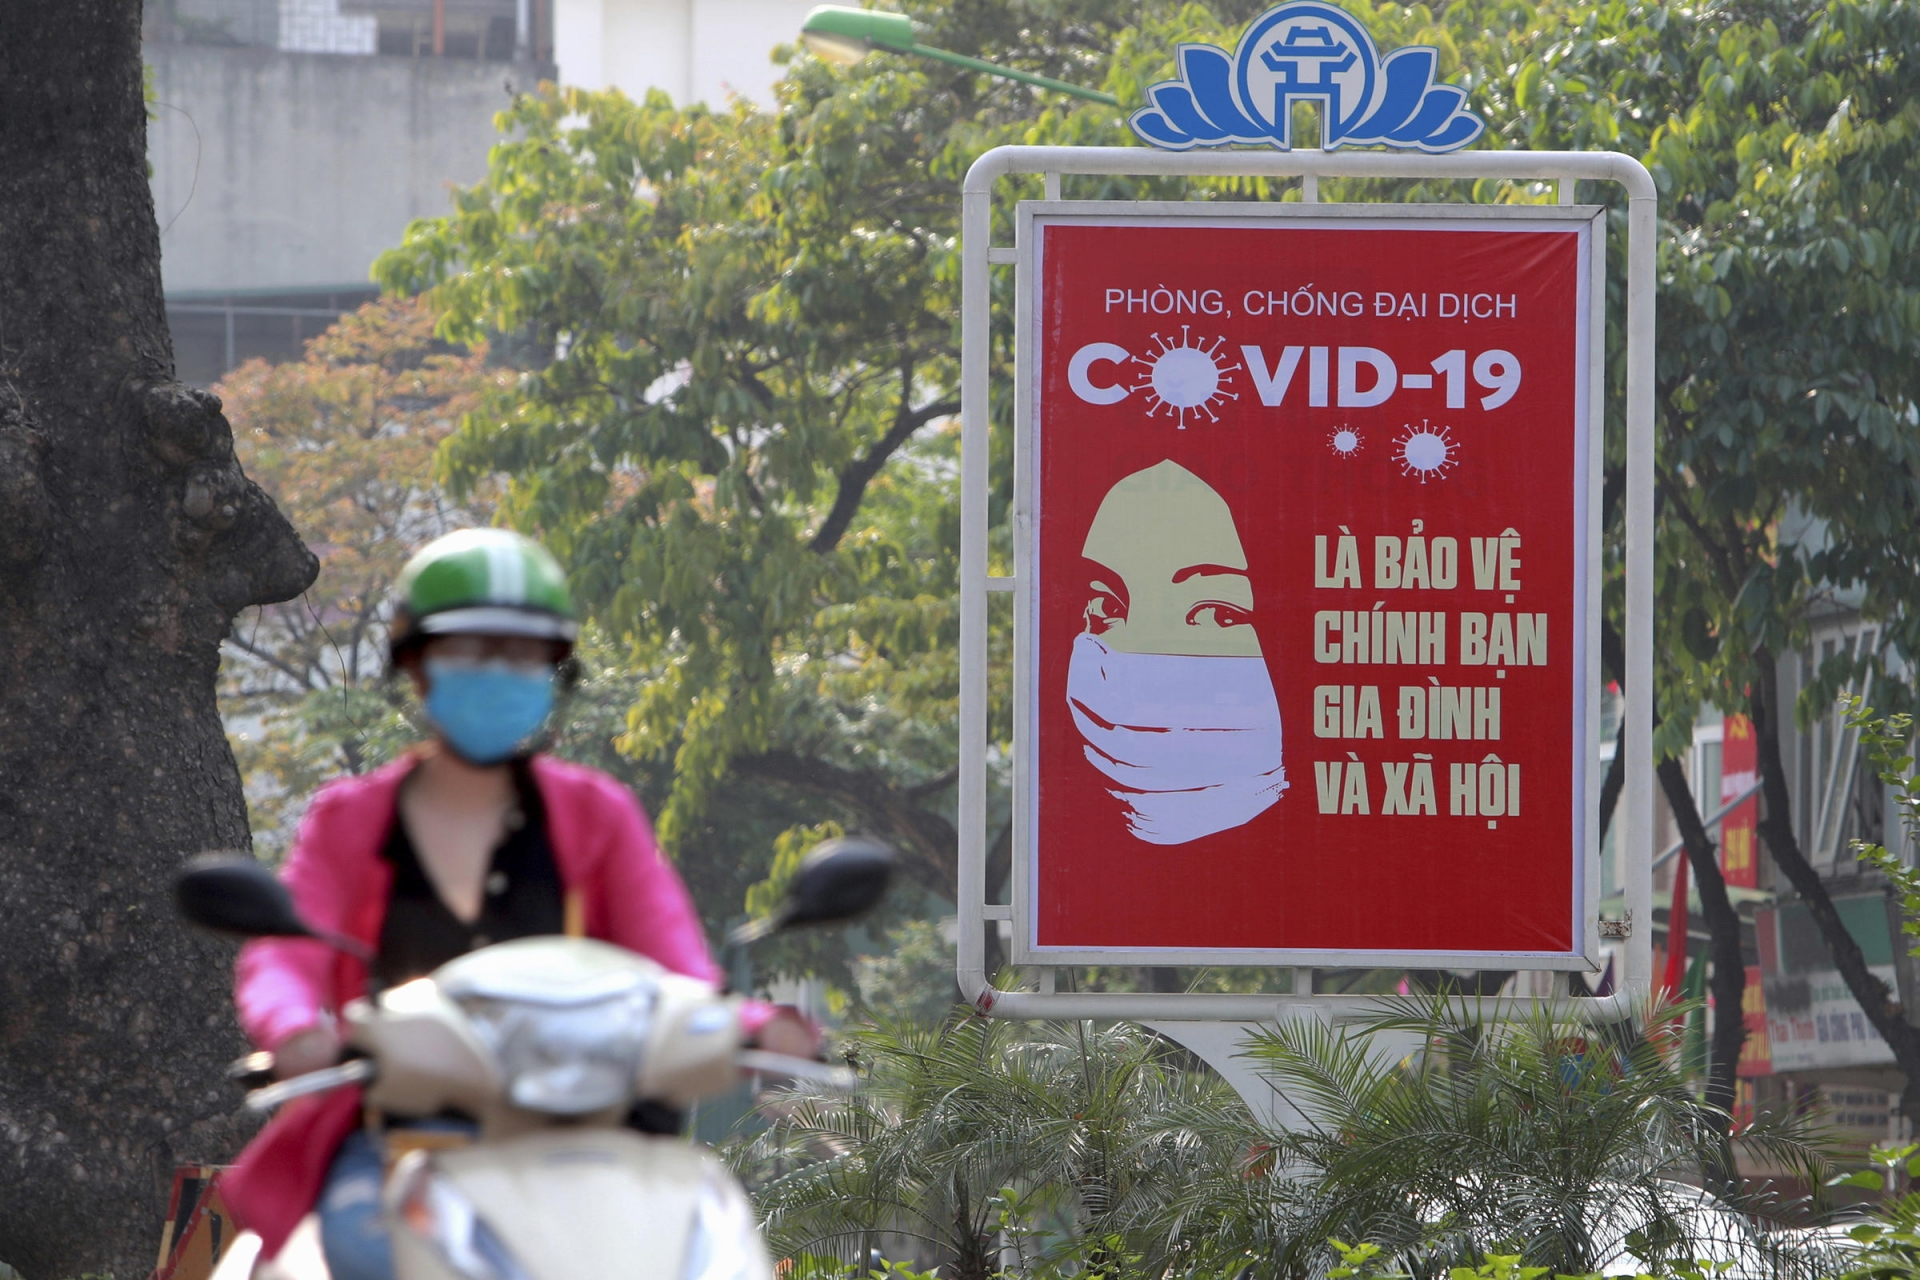 vietnams covid 19 success through the eyes of an american living in ho chi minh city